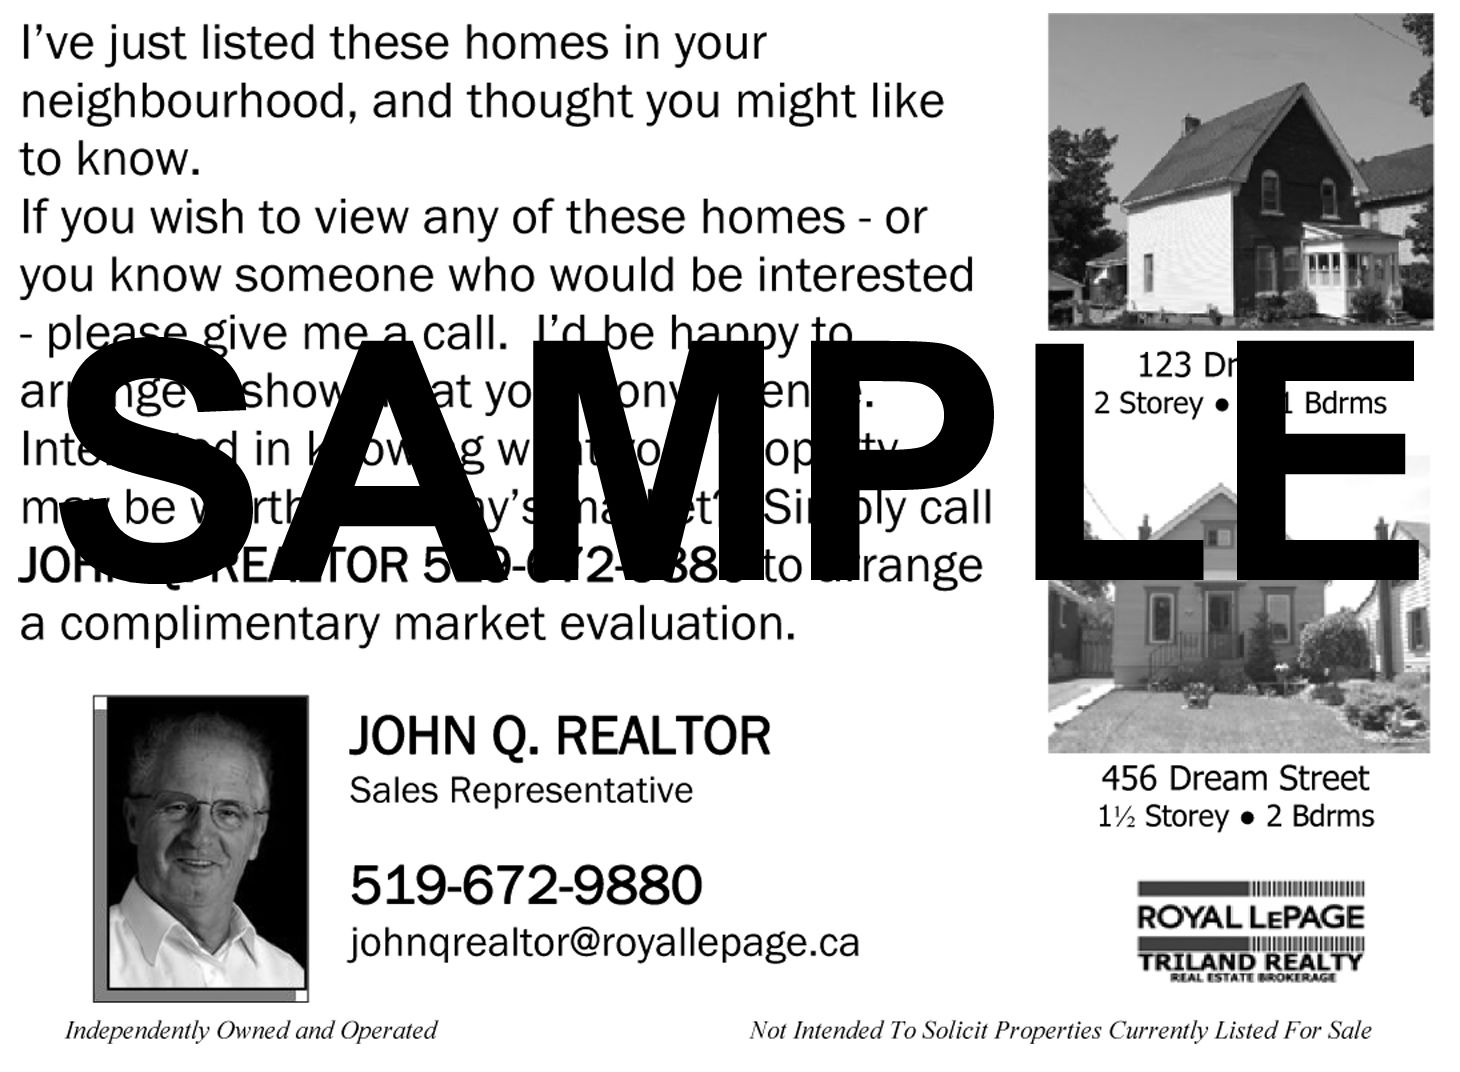 Royal lepage triland realty sample just listed royal lepage royal lepage triland realty sample just listed reheart Gallery